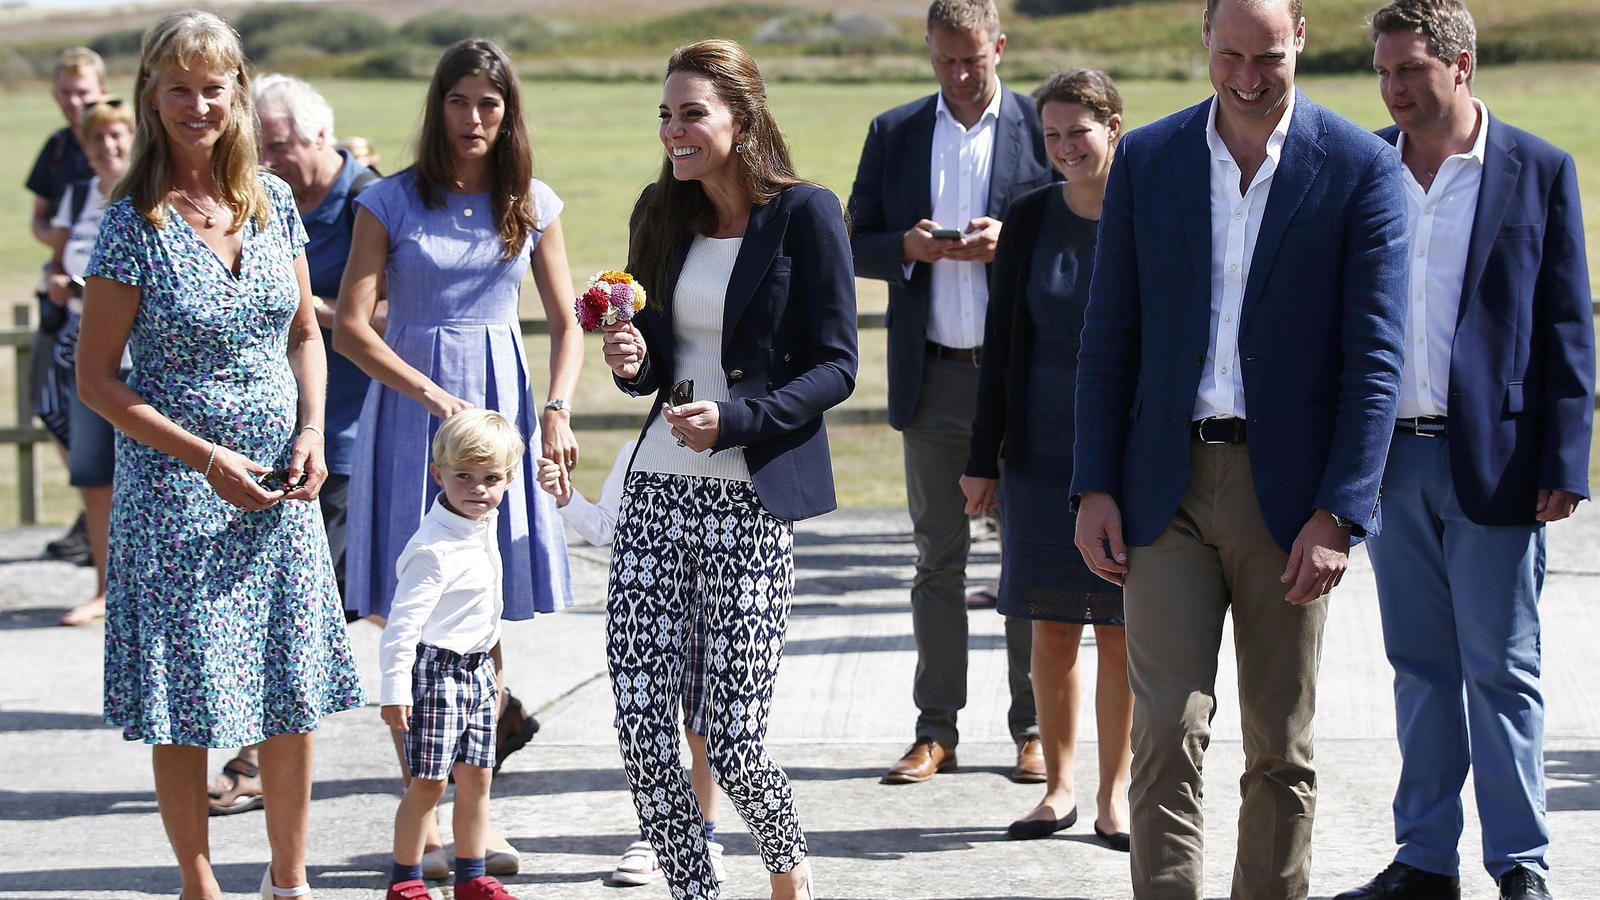 The Duke and Duchess of Cambridge visit Tresco Abbey Garden, Tresco, Scilly Islands, UK, on the 2nd September 2016.Picture by Peter Nicholls/WPA-Pool